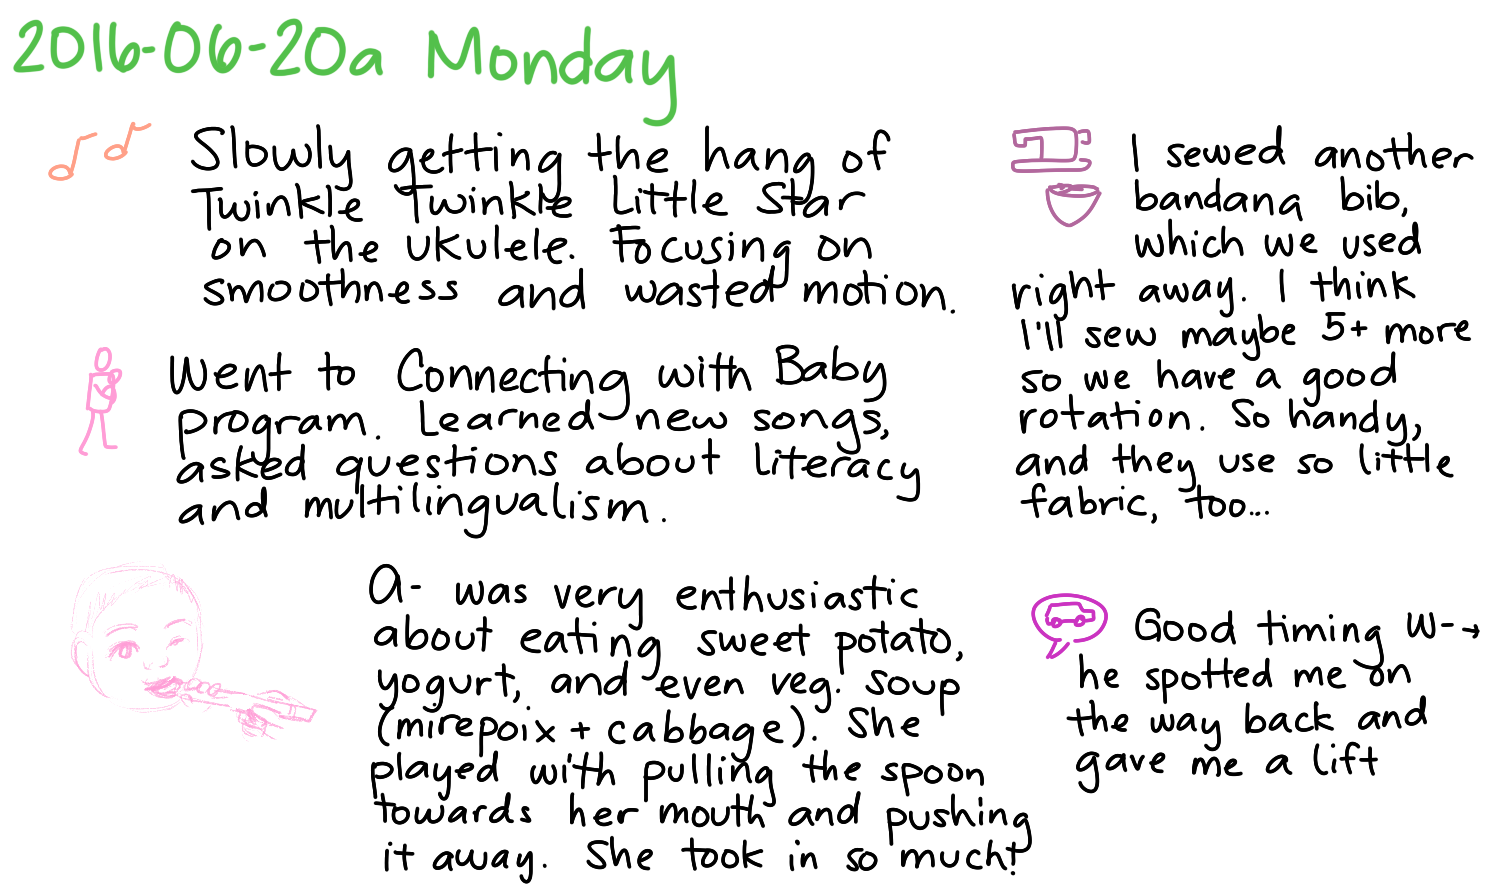 2016-06-20a Monday -- index card #journal.png